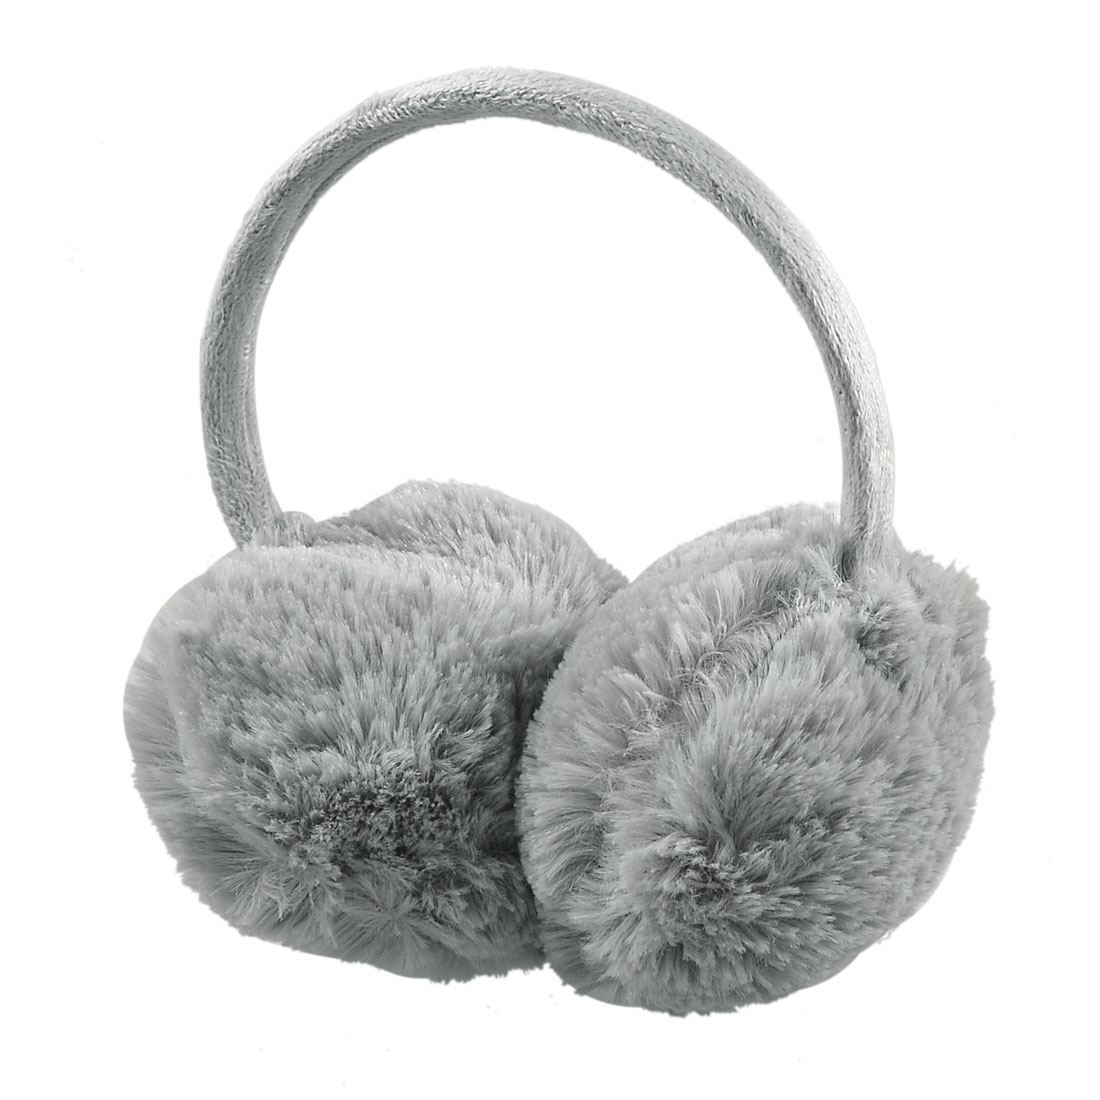 Lady Headwear Gray Fluffy Plush Ear Warmers Winter Earmuffs